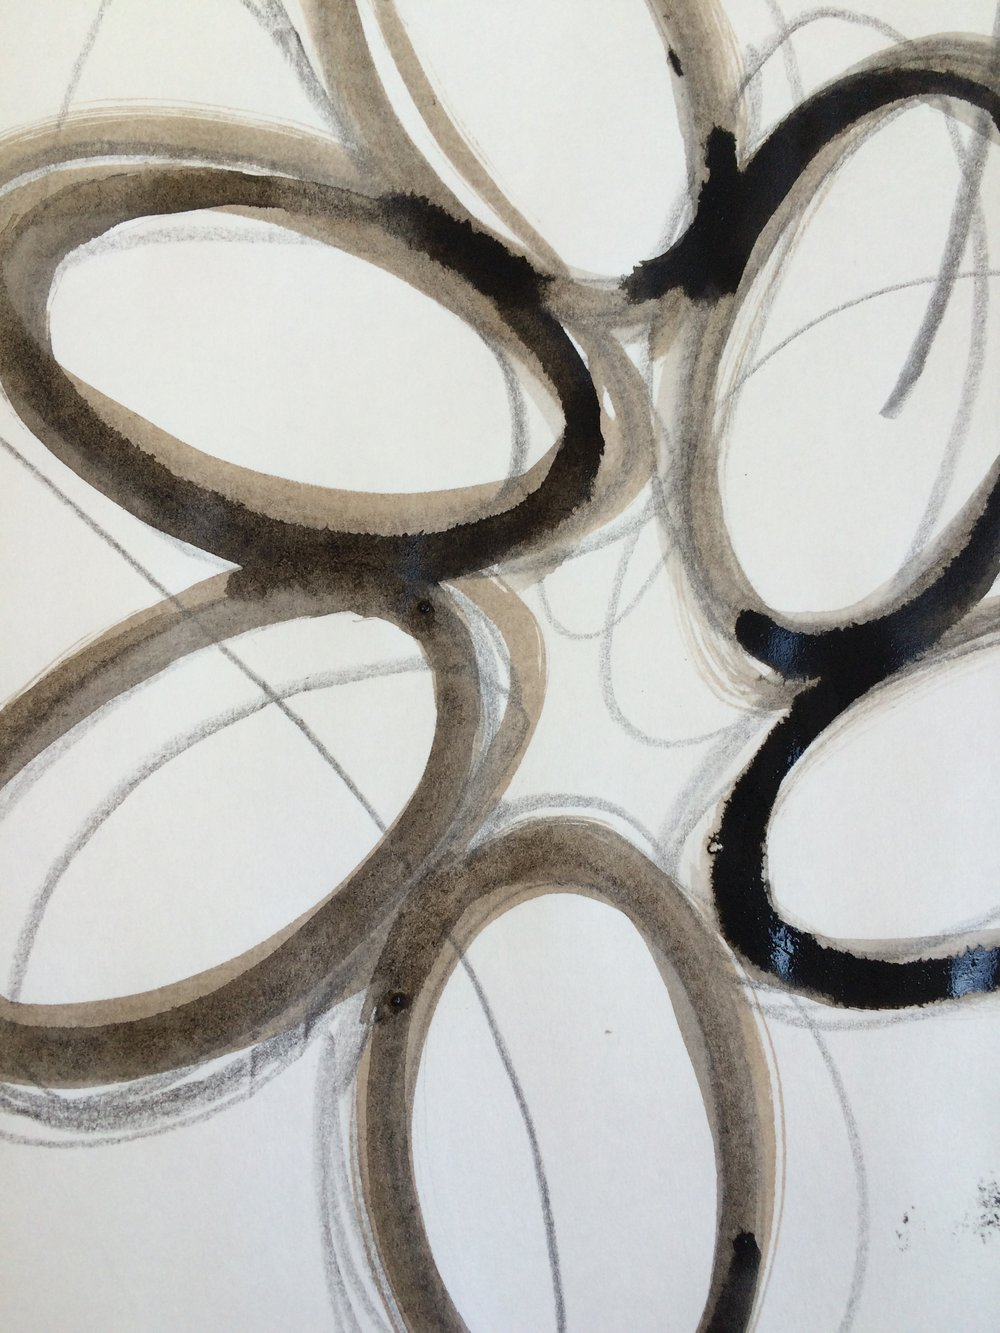 India Ink, Walnut Ink, Space, #rv5404, Noise, Charcoal, Time, Flat Paint,